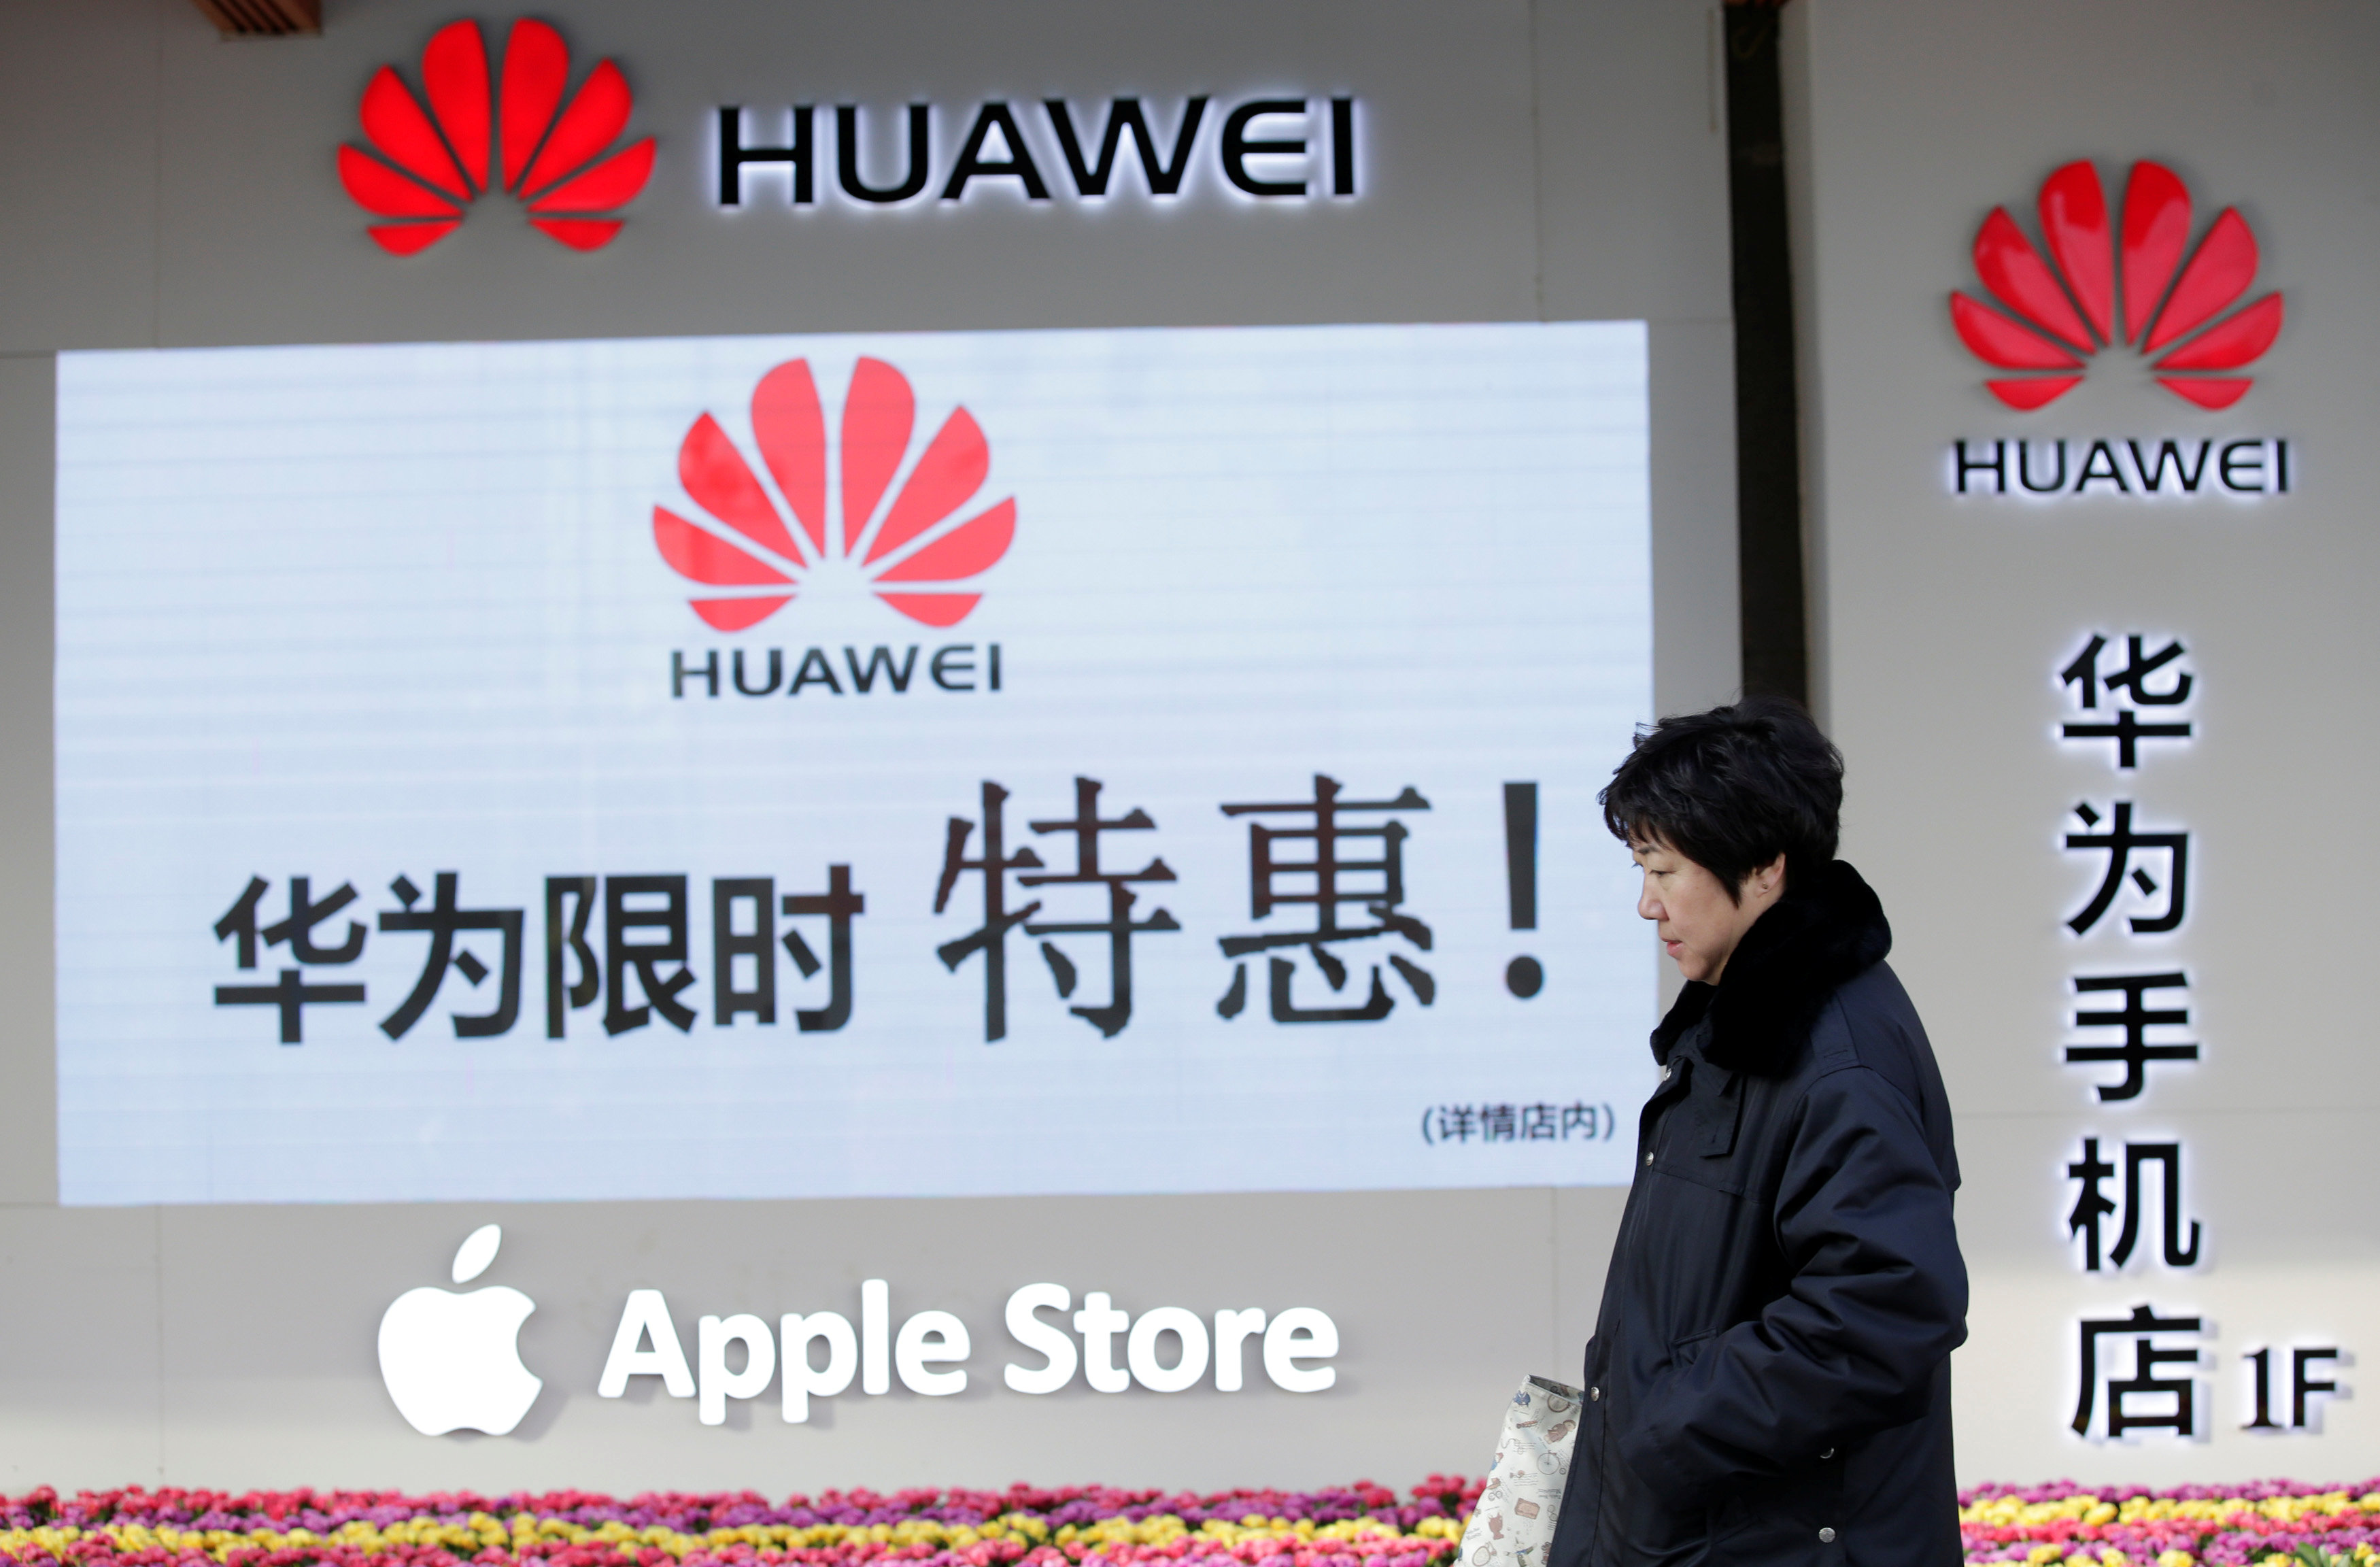 A woman walks past Huawei and Apple shops in Beijing on Dec. 12, 2018.